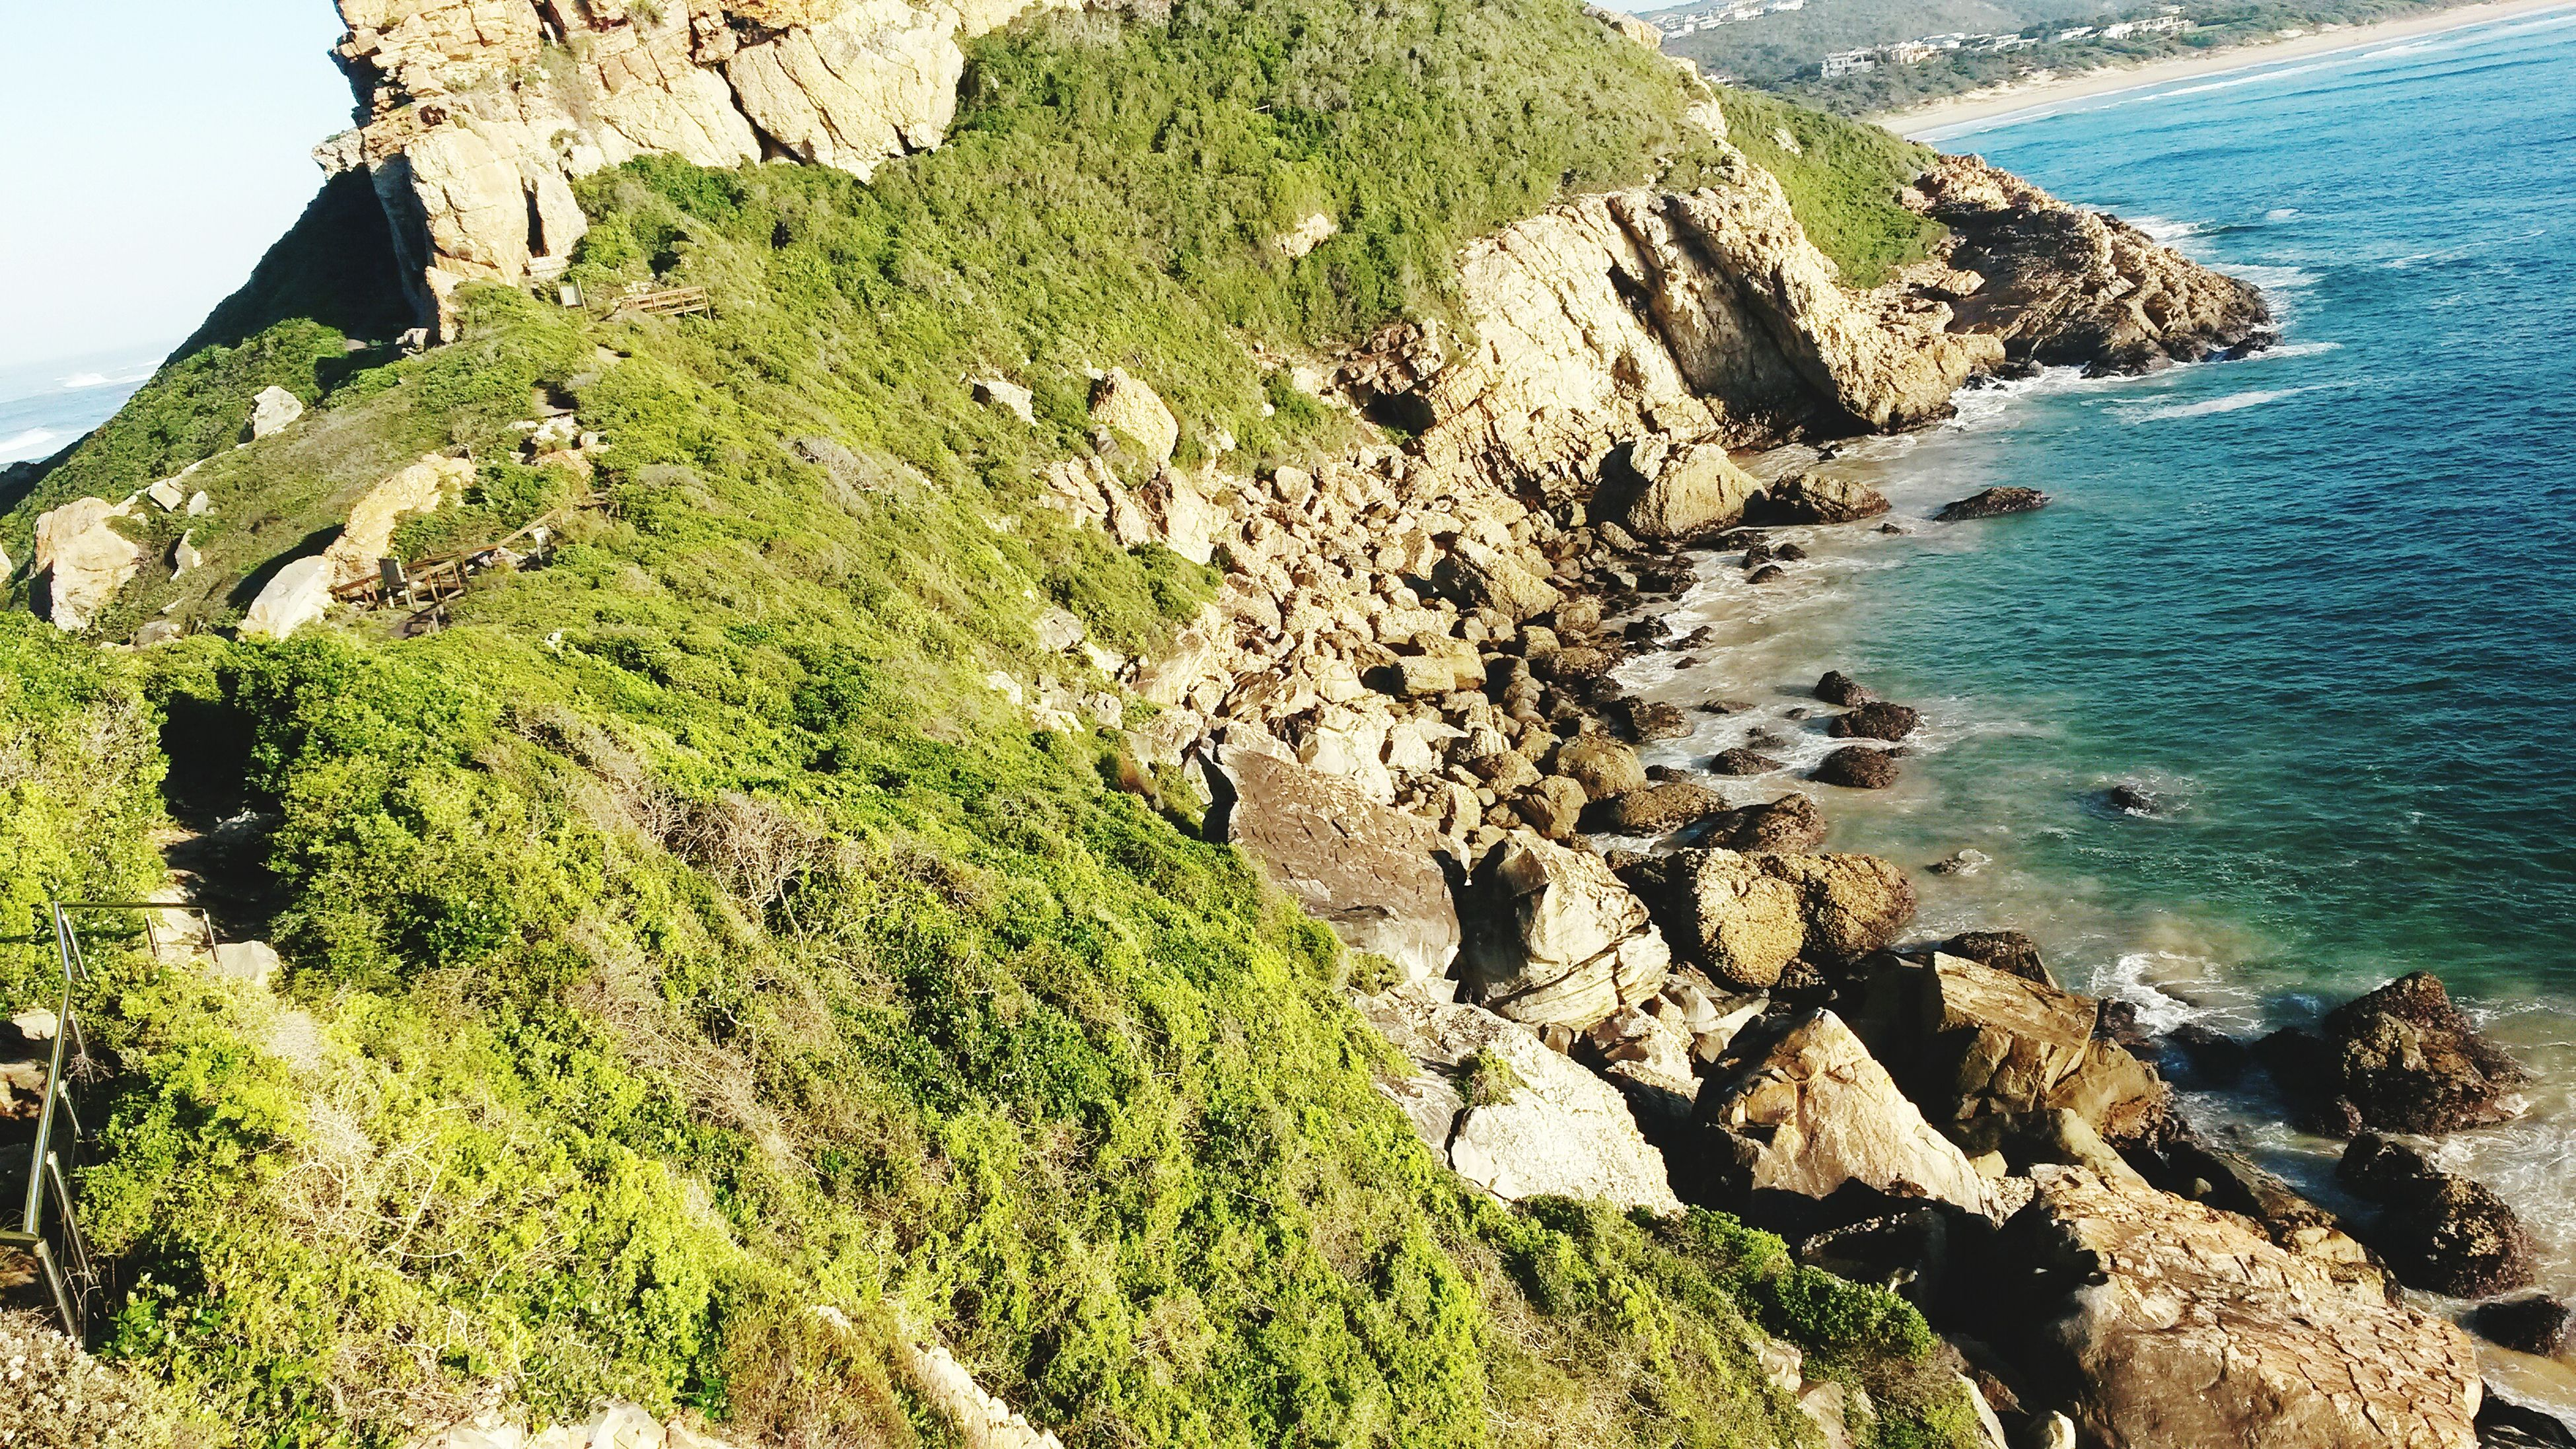 sea, water, tranquil scene, cliff, tranquility, rock formation, scenics, rock - object, horizon over water, beauty in nature, high angle view, nature, coastline, rock, plant, mountain, beach, idyllic, blue, day